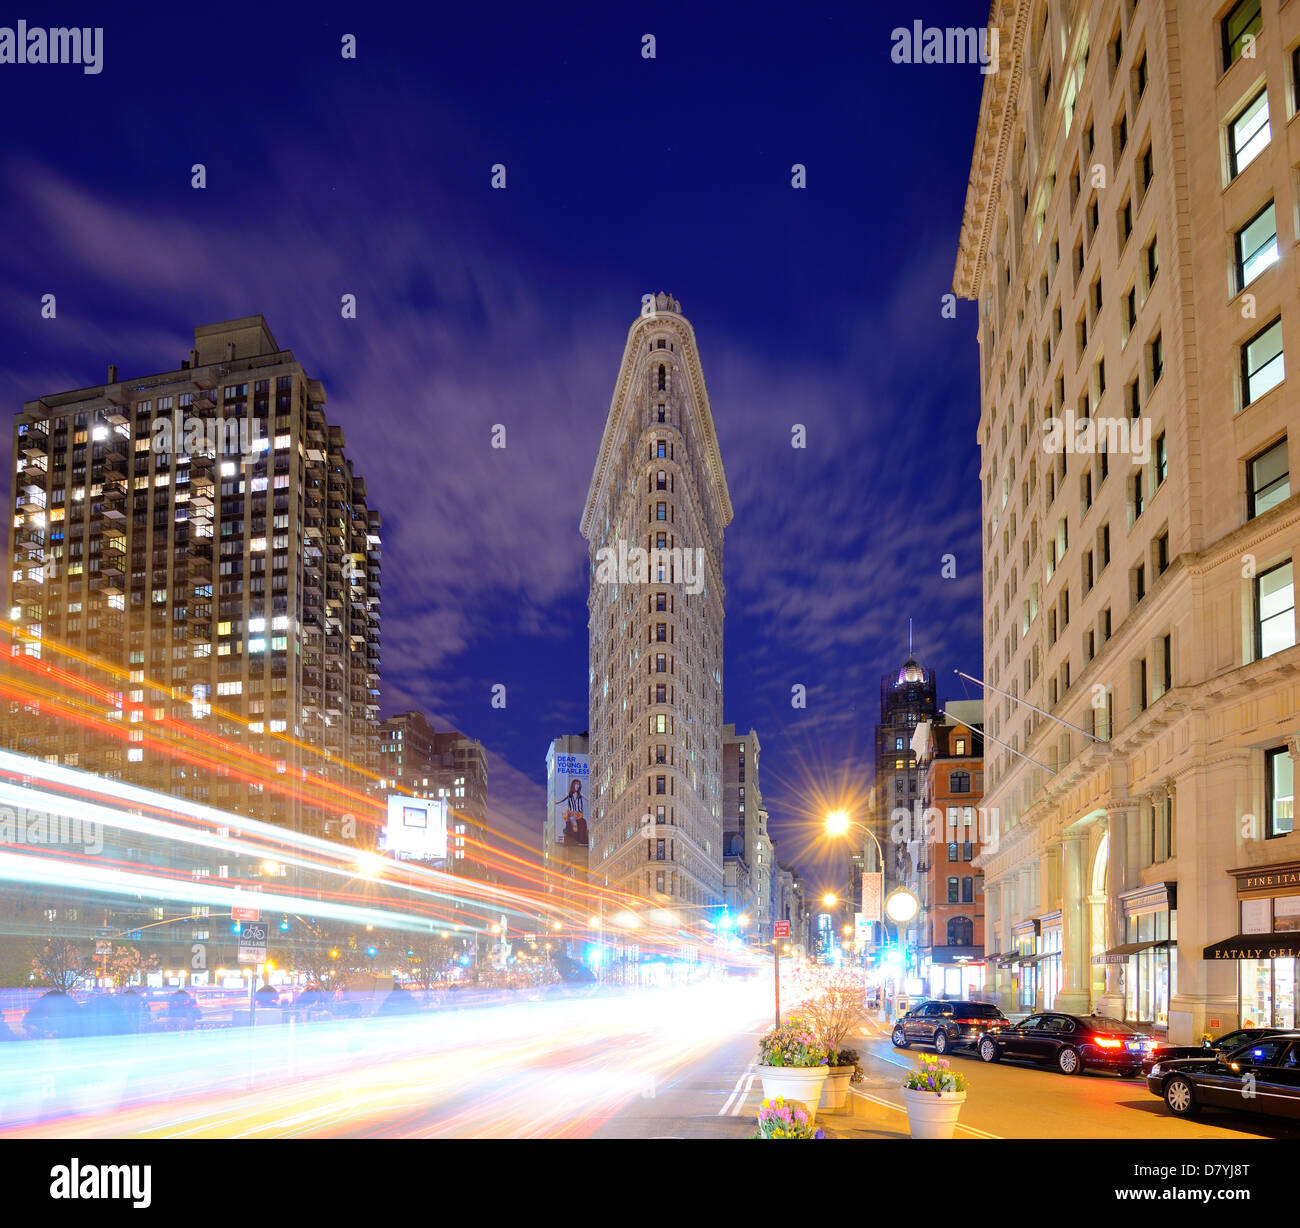 The Flatiron District in New York City. - Stock Image